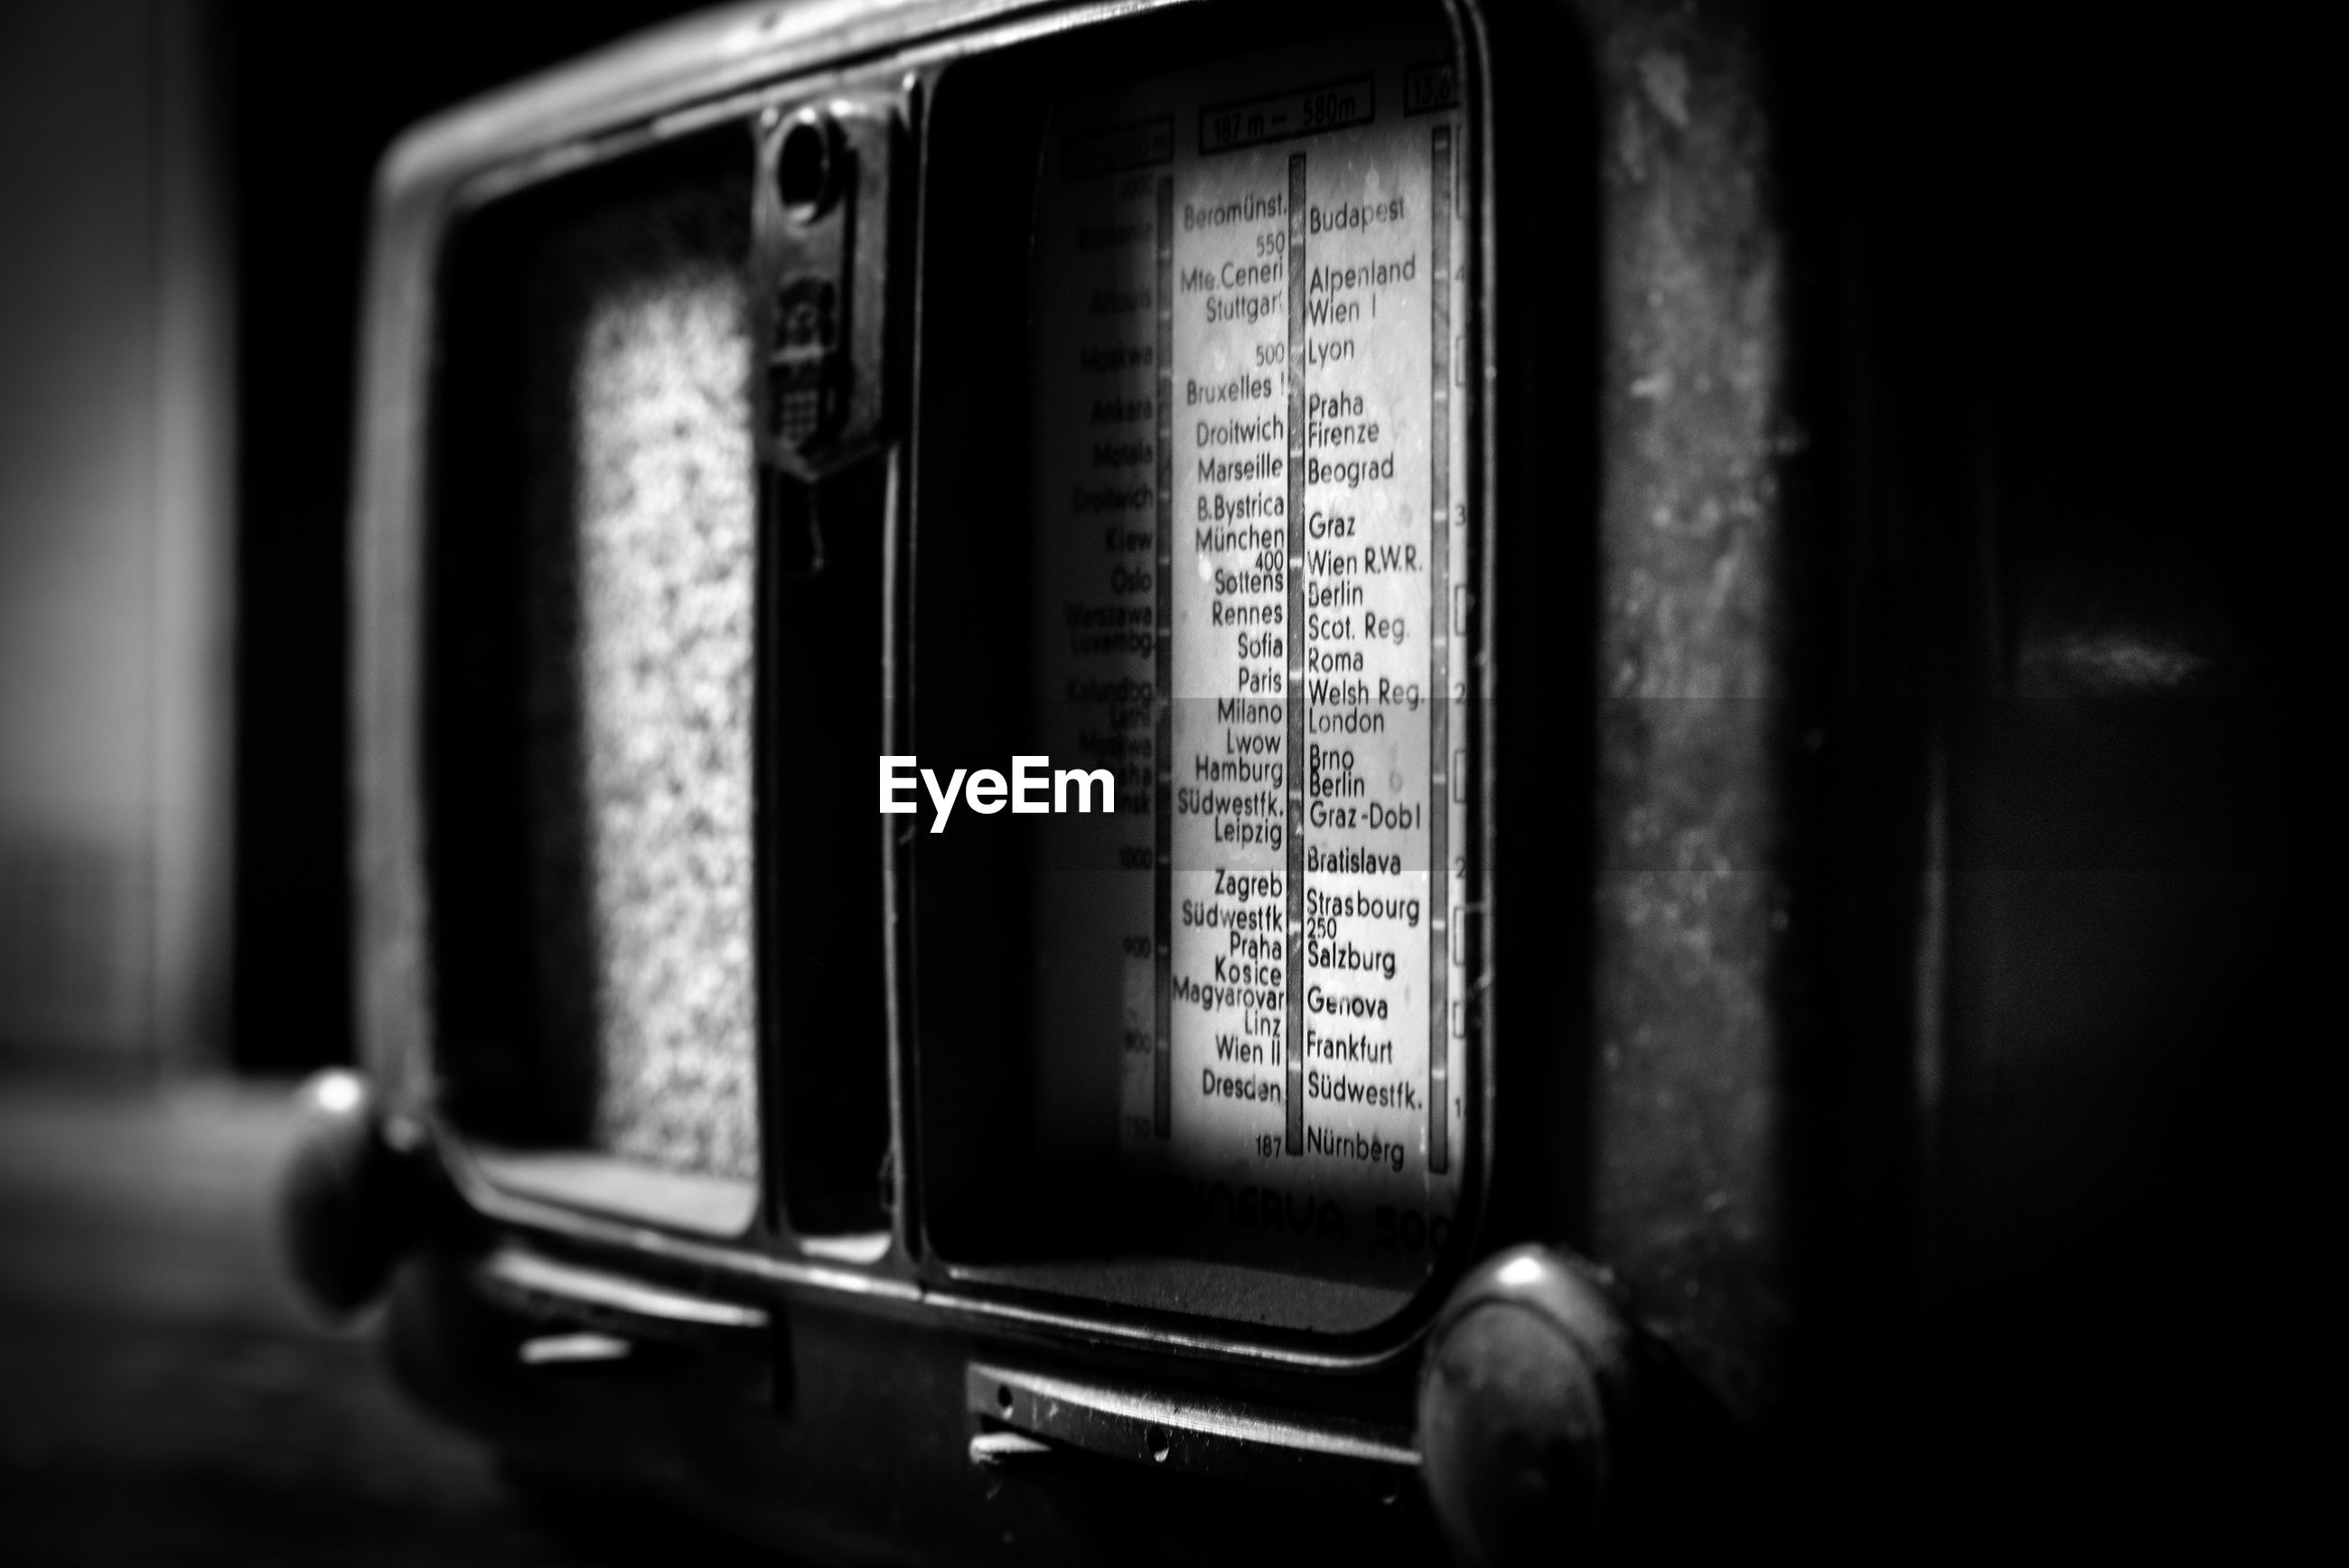 text, close-up, communication, no people, western script, selective focus, indoors, number, old, retro styled, radio, history, technology, antique, still life, the past, sign, analog, metal